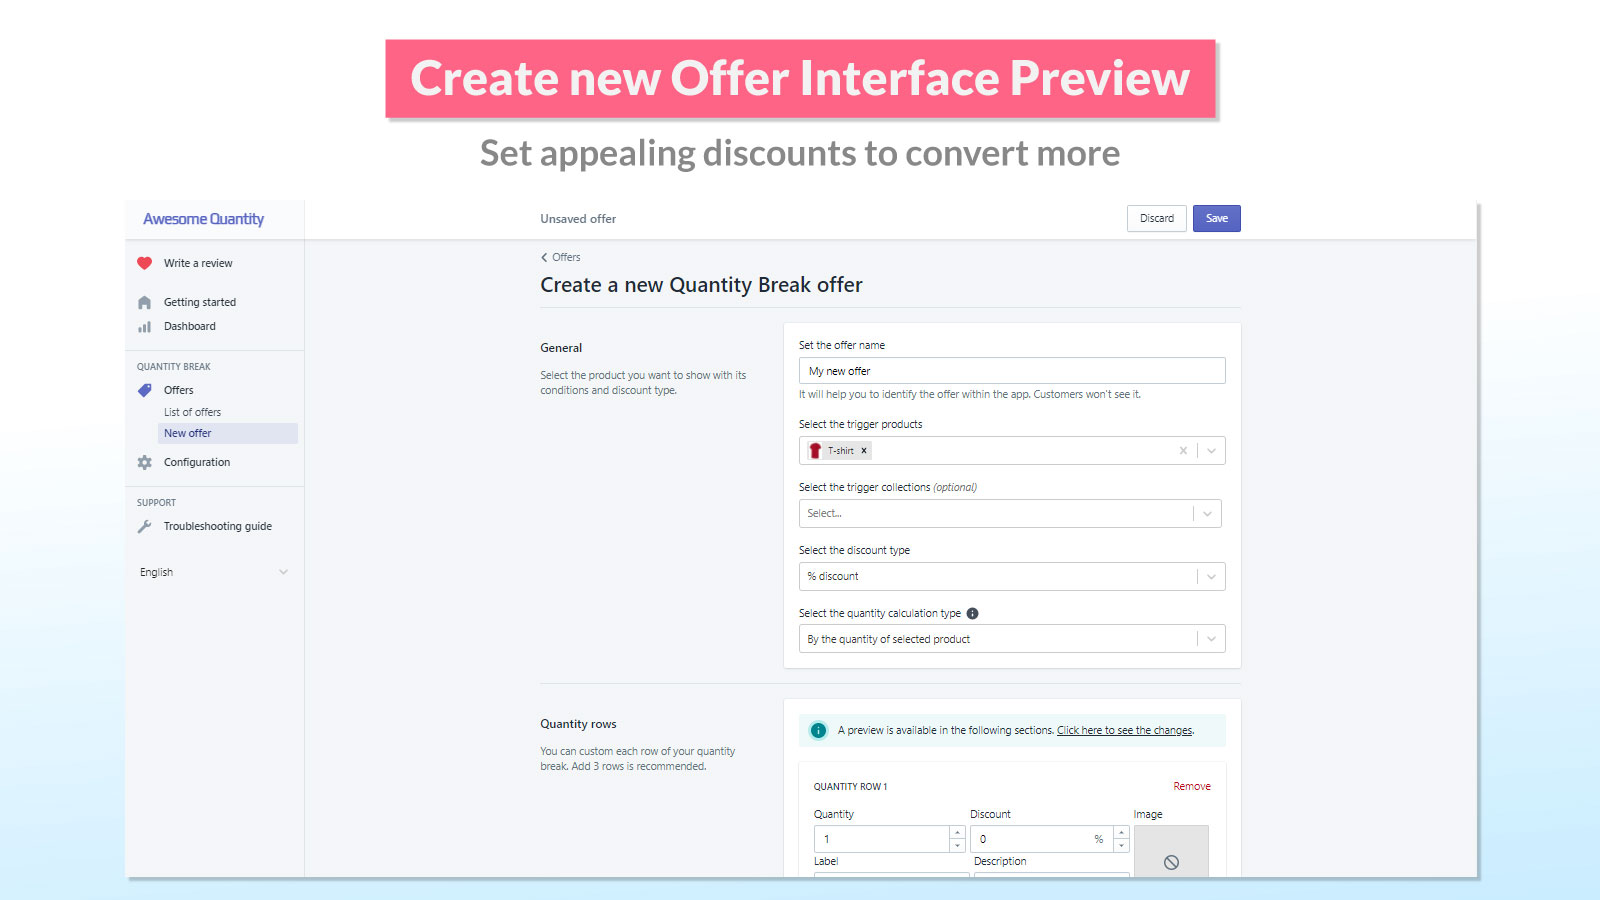 Create new offer interface preview